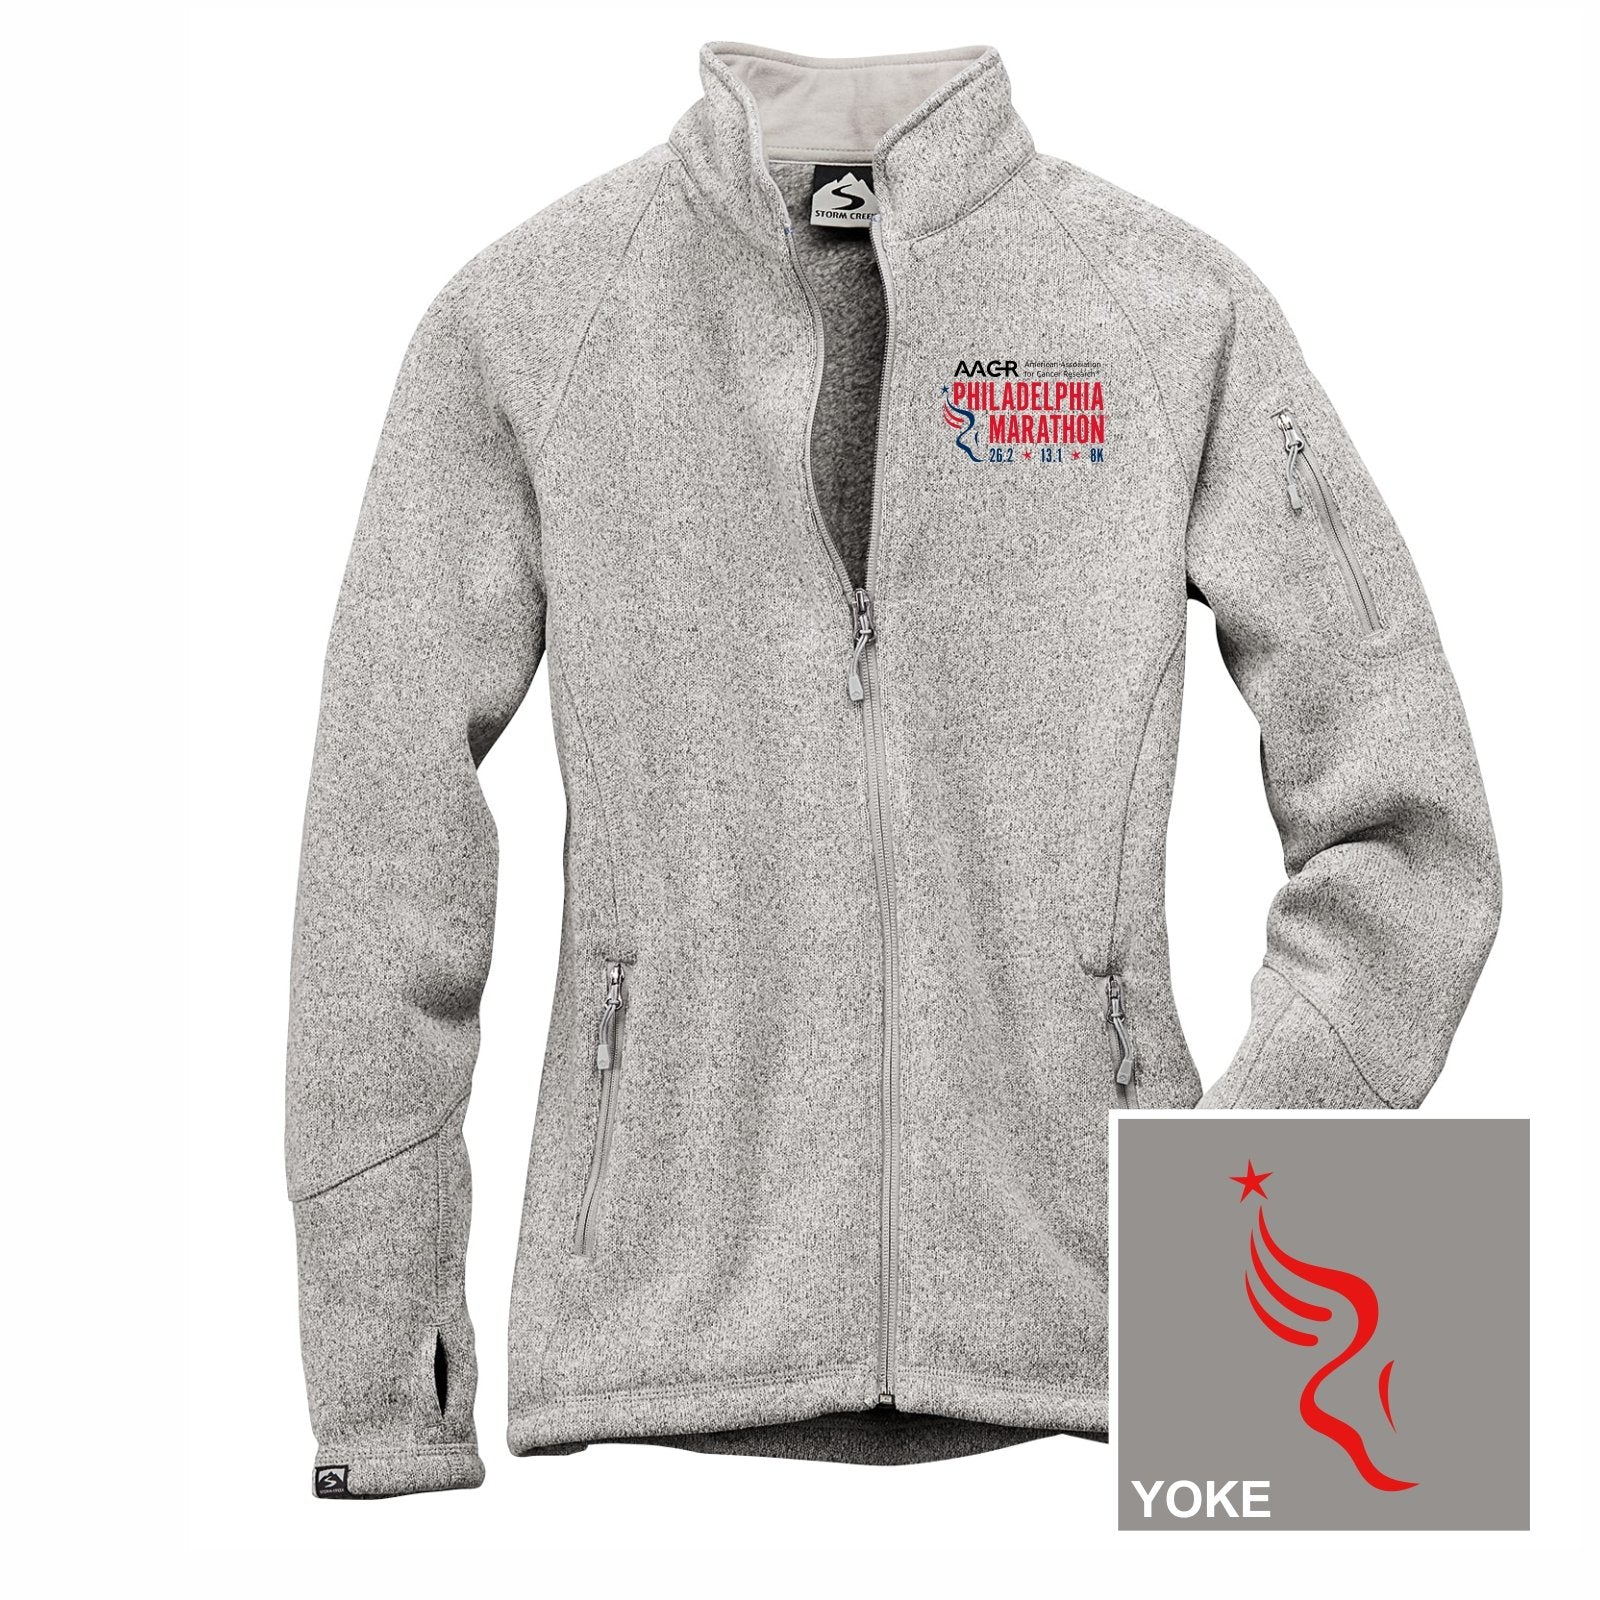 Women's Sweaterfleece Zip Jacket -Platinum 'Left Chest Embr. Design' - AACR Philadelphia Marathon